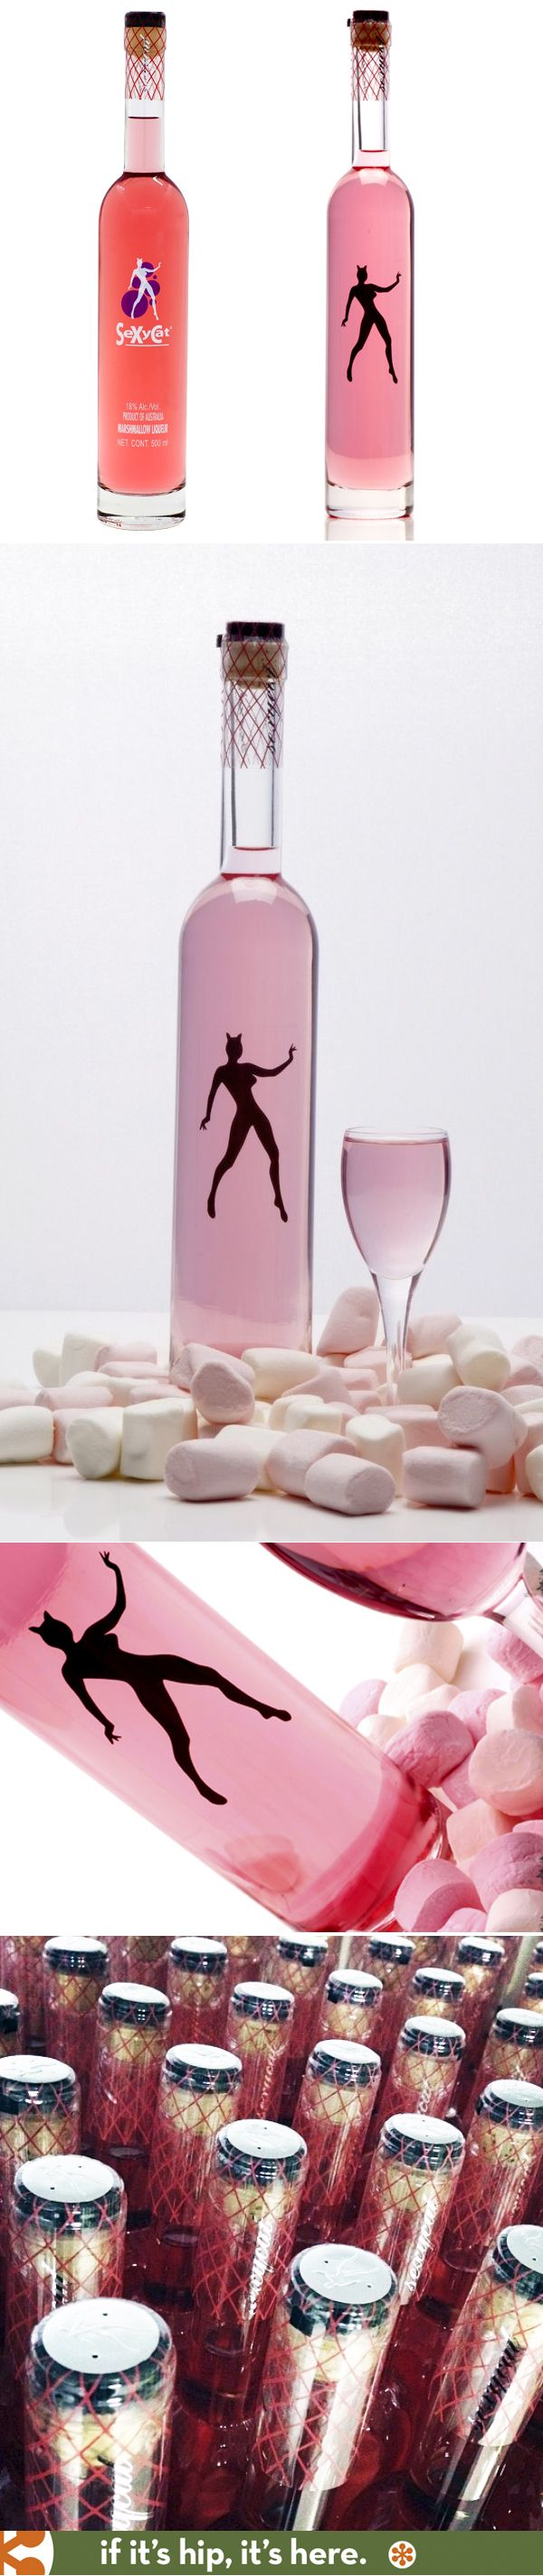 Sexycat Marshmallow Flavored Vodka Liqueur in two variations of bottle designs from Australia's MT.Uncle Distillery.